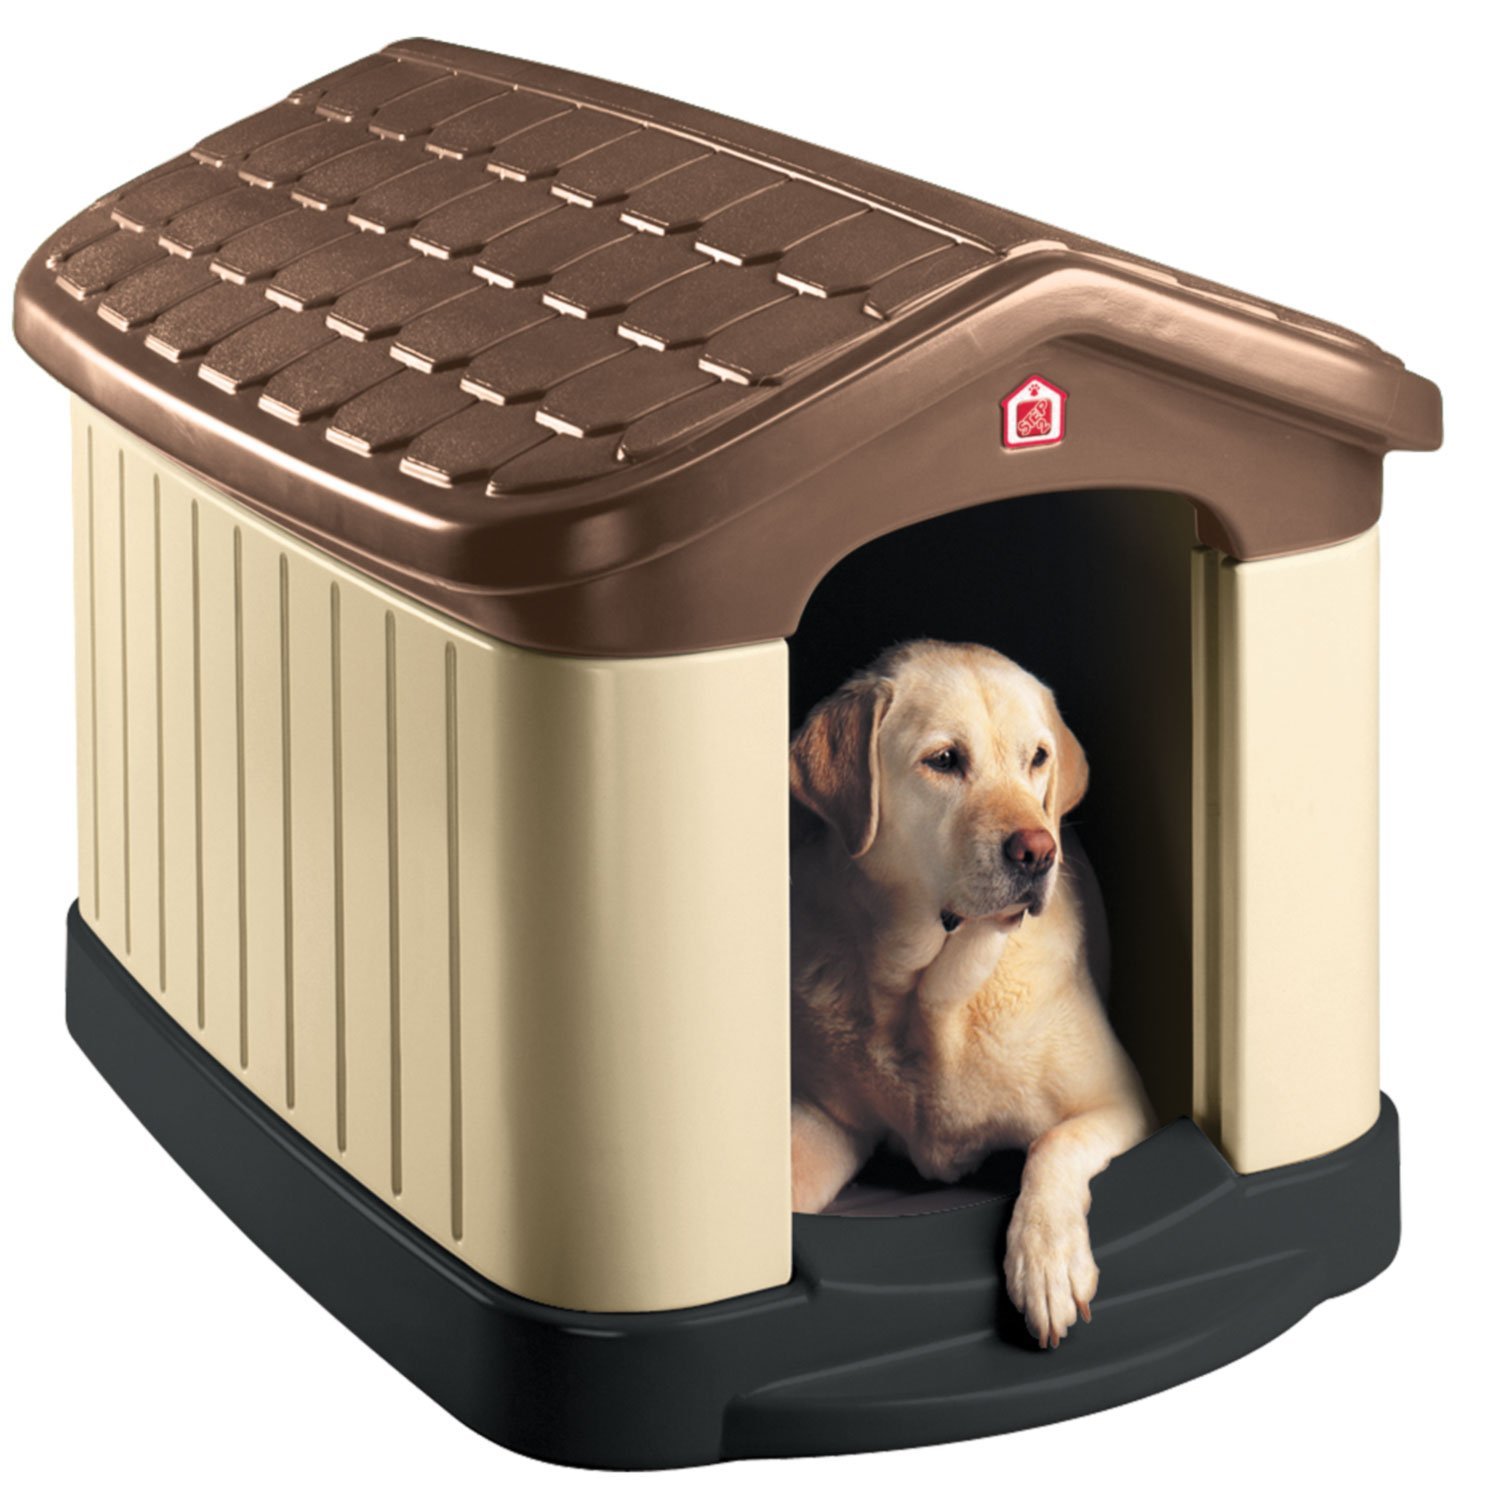 Dog House Our Pet S Tuff N Rugged Dog House Petco